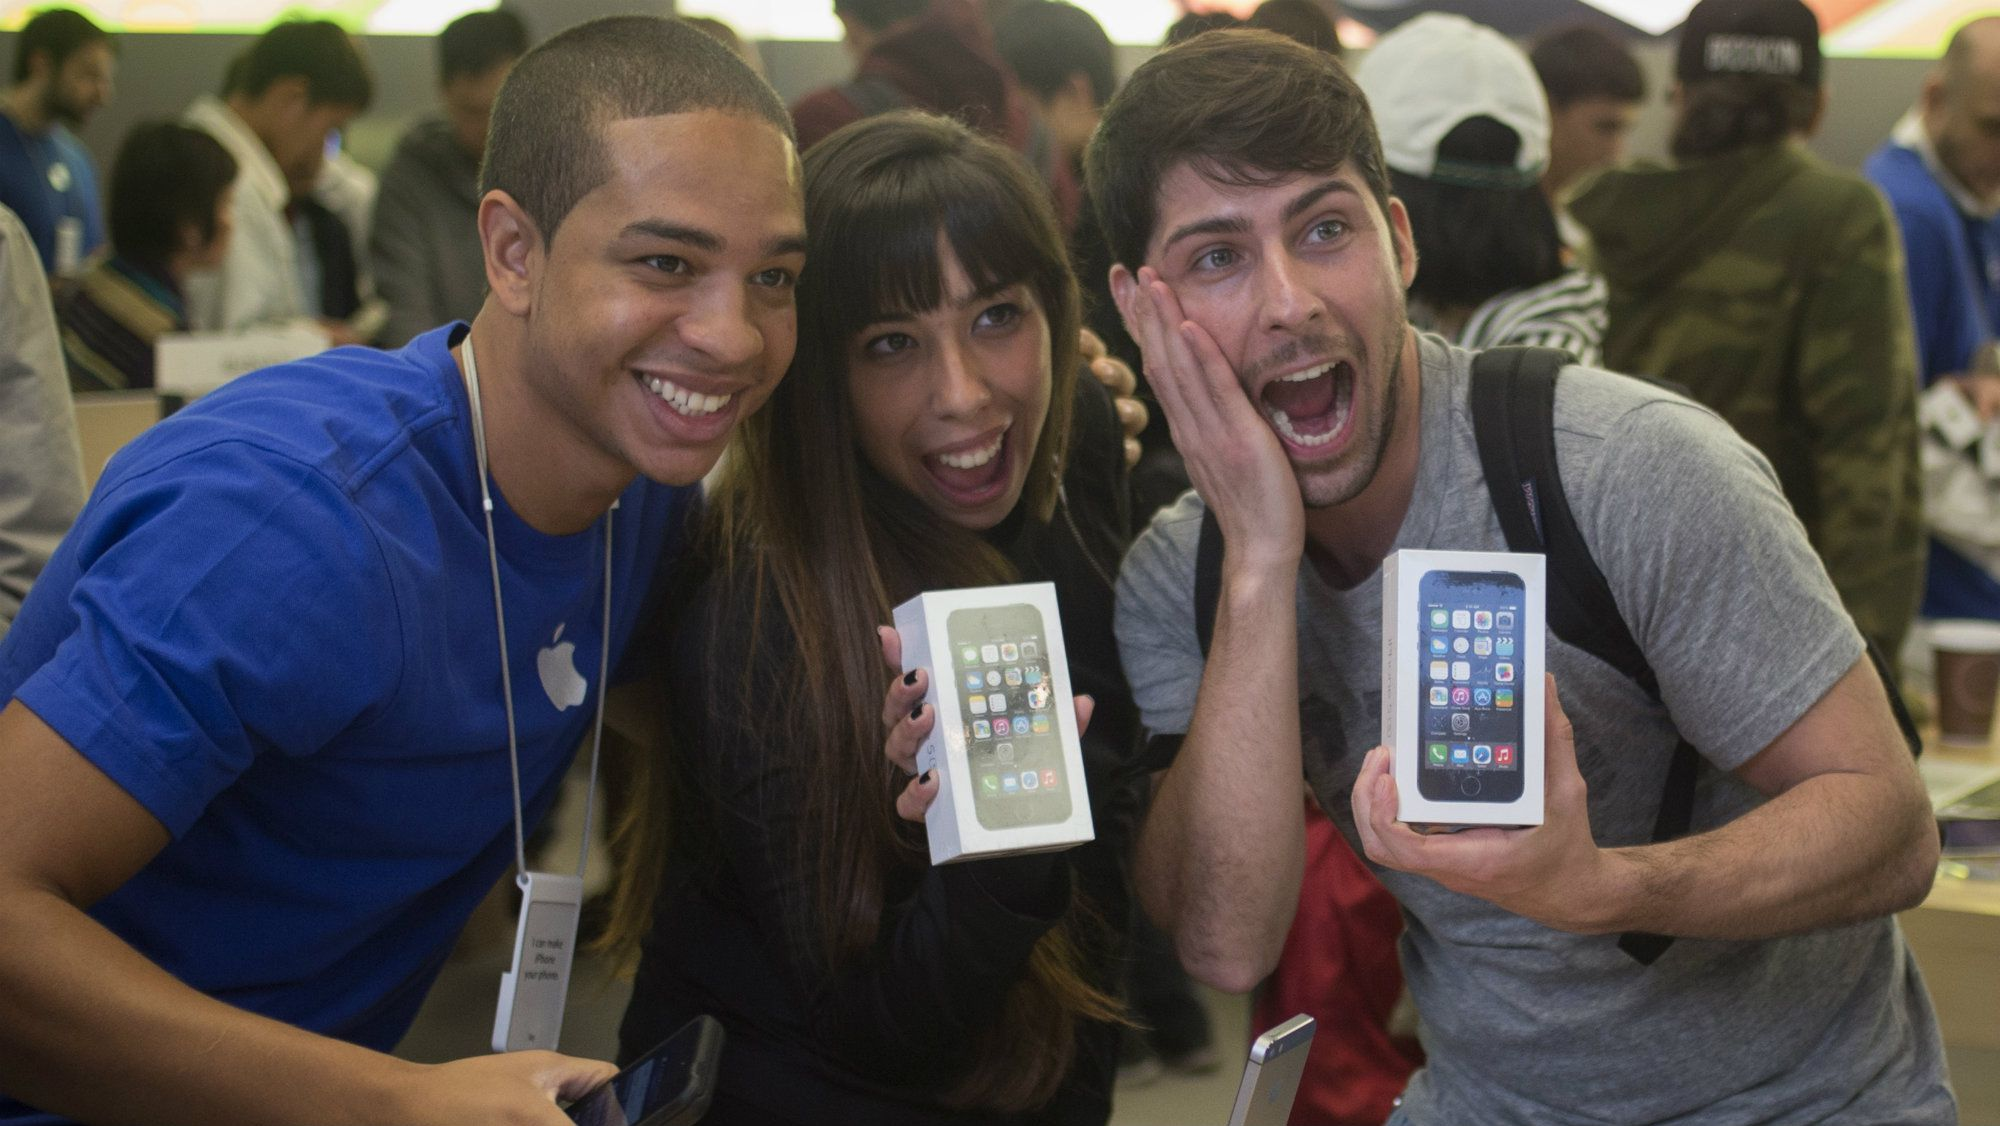 Customers pose with their new Apple iPhone 5s phones with an Apple employee at the Apple Retail Store on Fifth Avenue in Manhattan, New York.